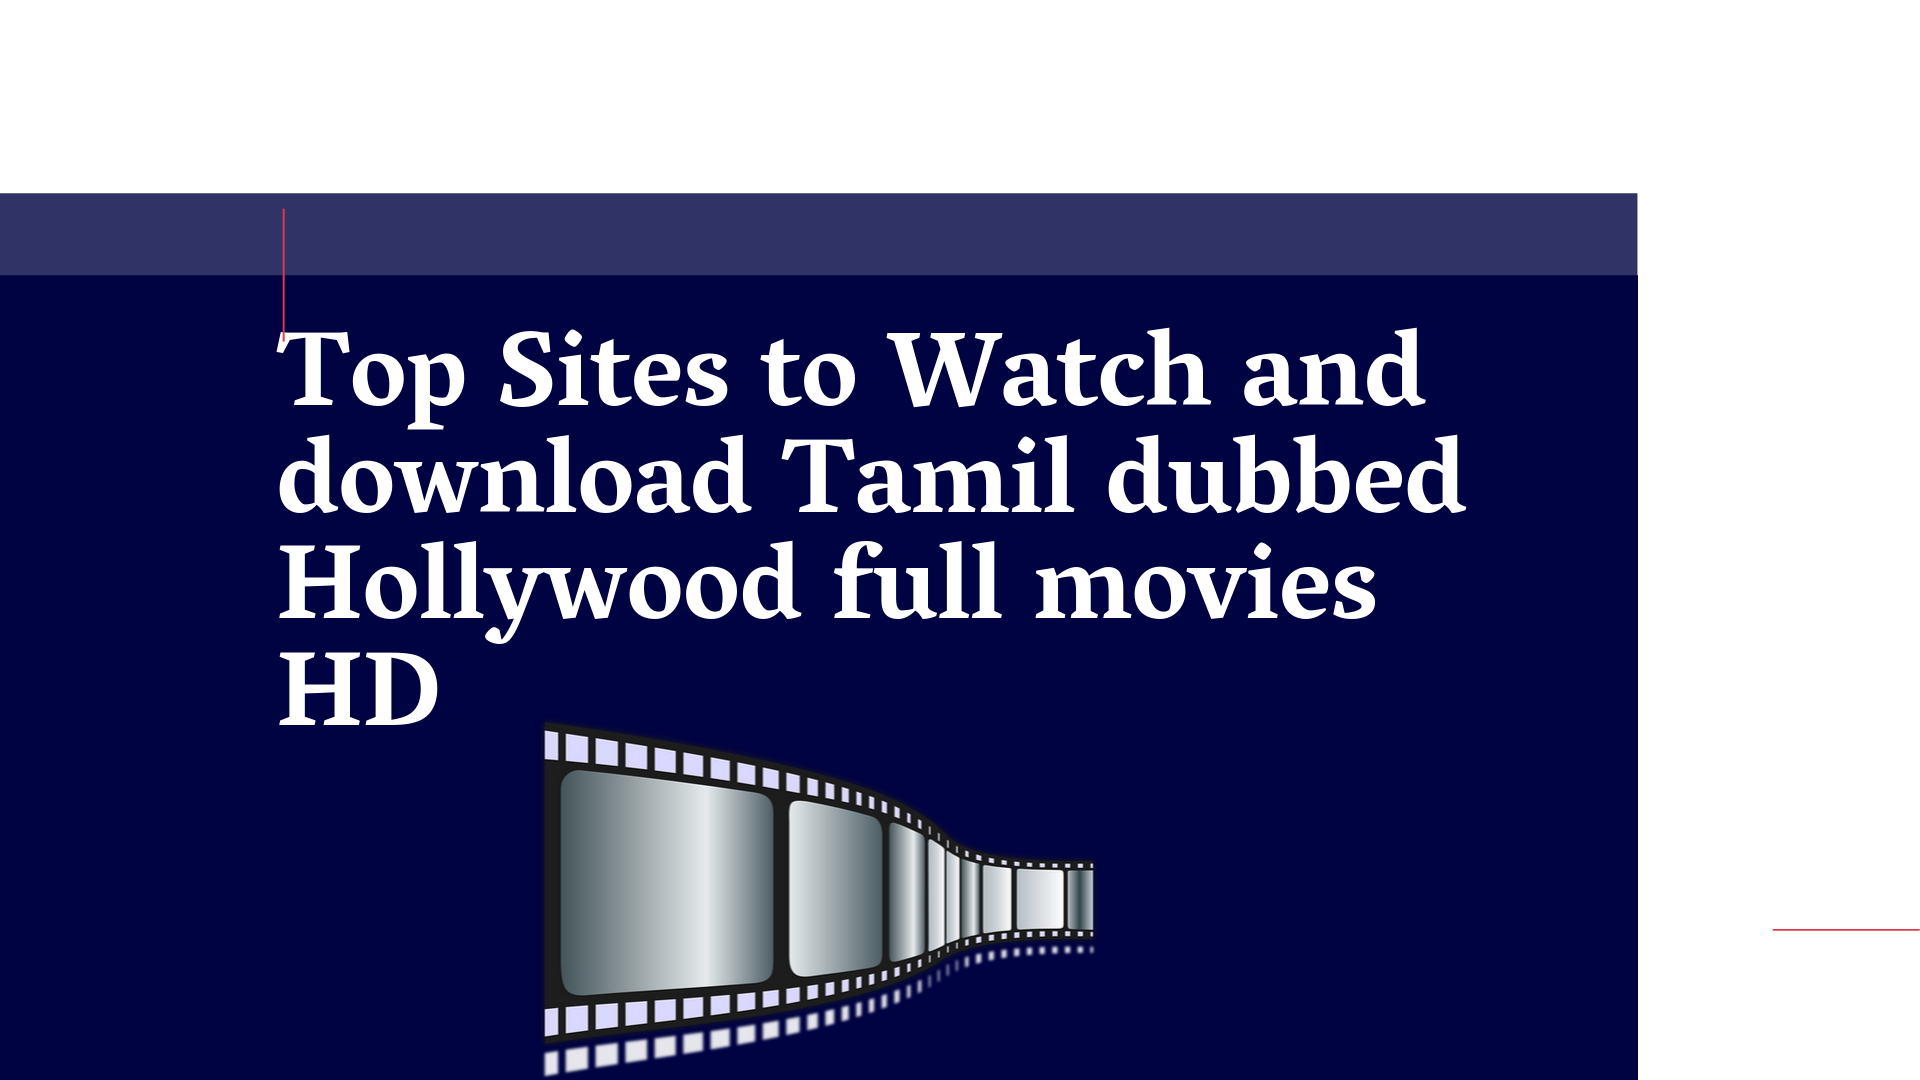 Top 5 Sites To Watch And Download Tamil Dubbed Hollywood Movies Full Movies Hd Tekkibytes Com